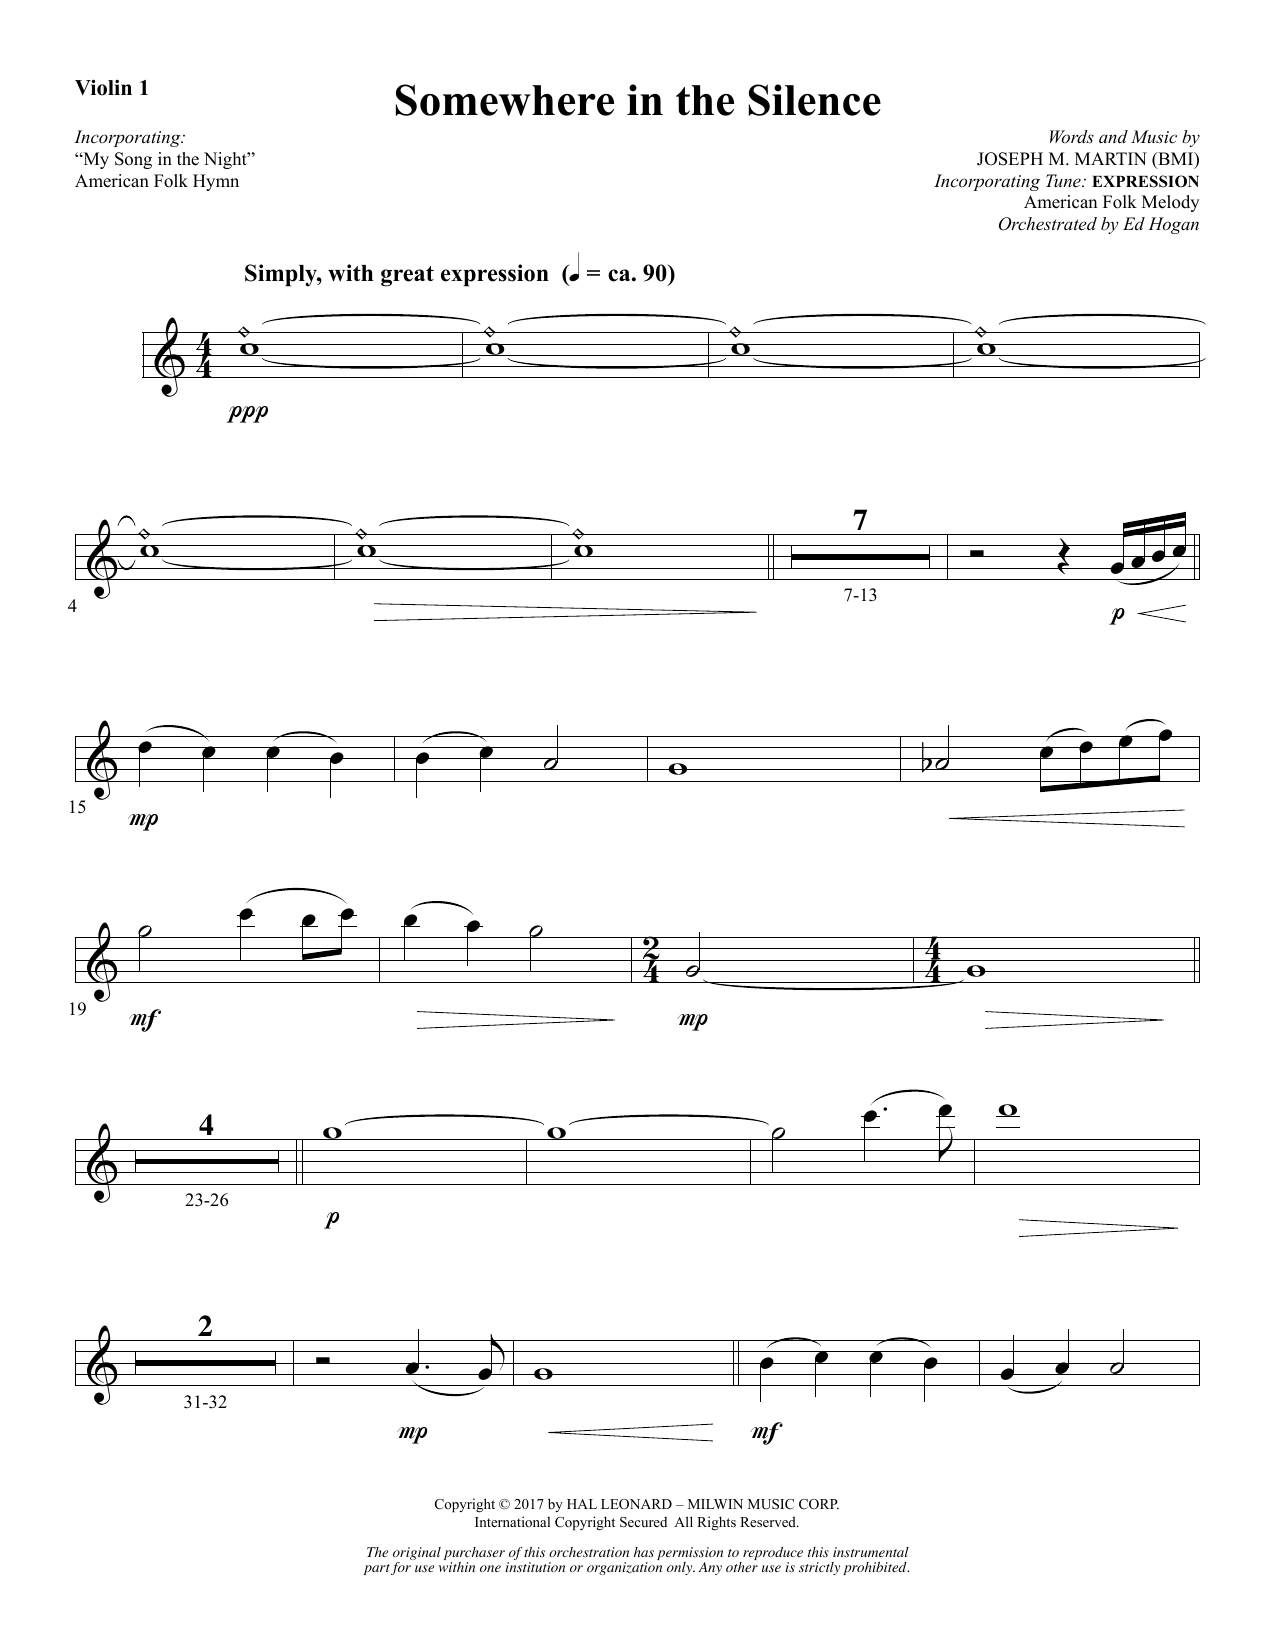 Joseph M. Martin Somewhere in the Silence - Violin 1 sheet music notes and chords. Download Printable PDF.